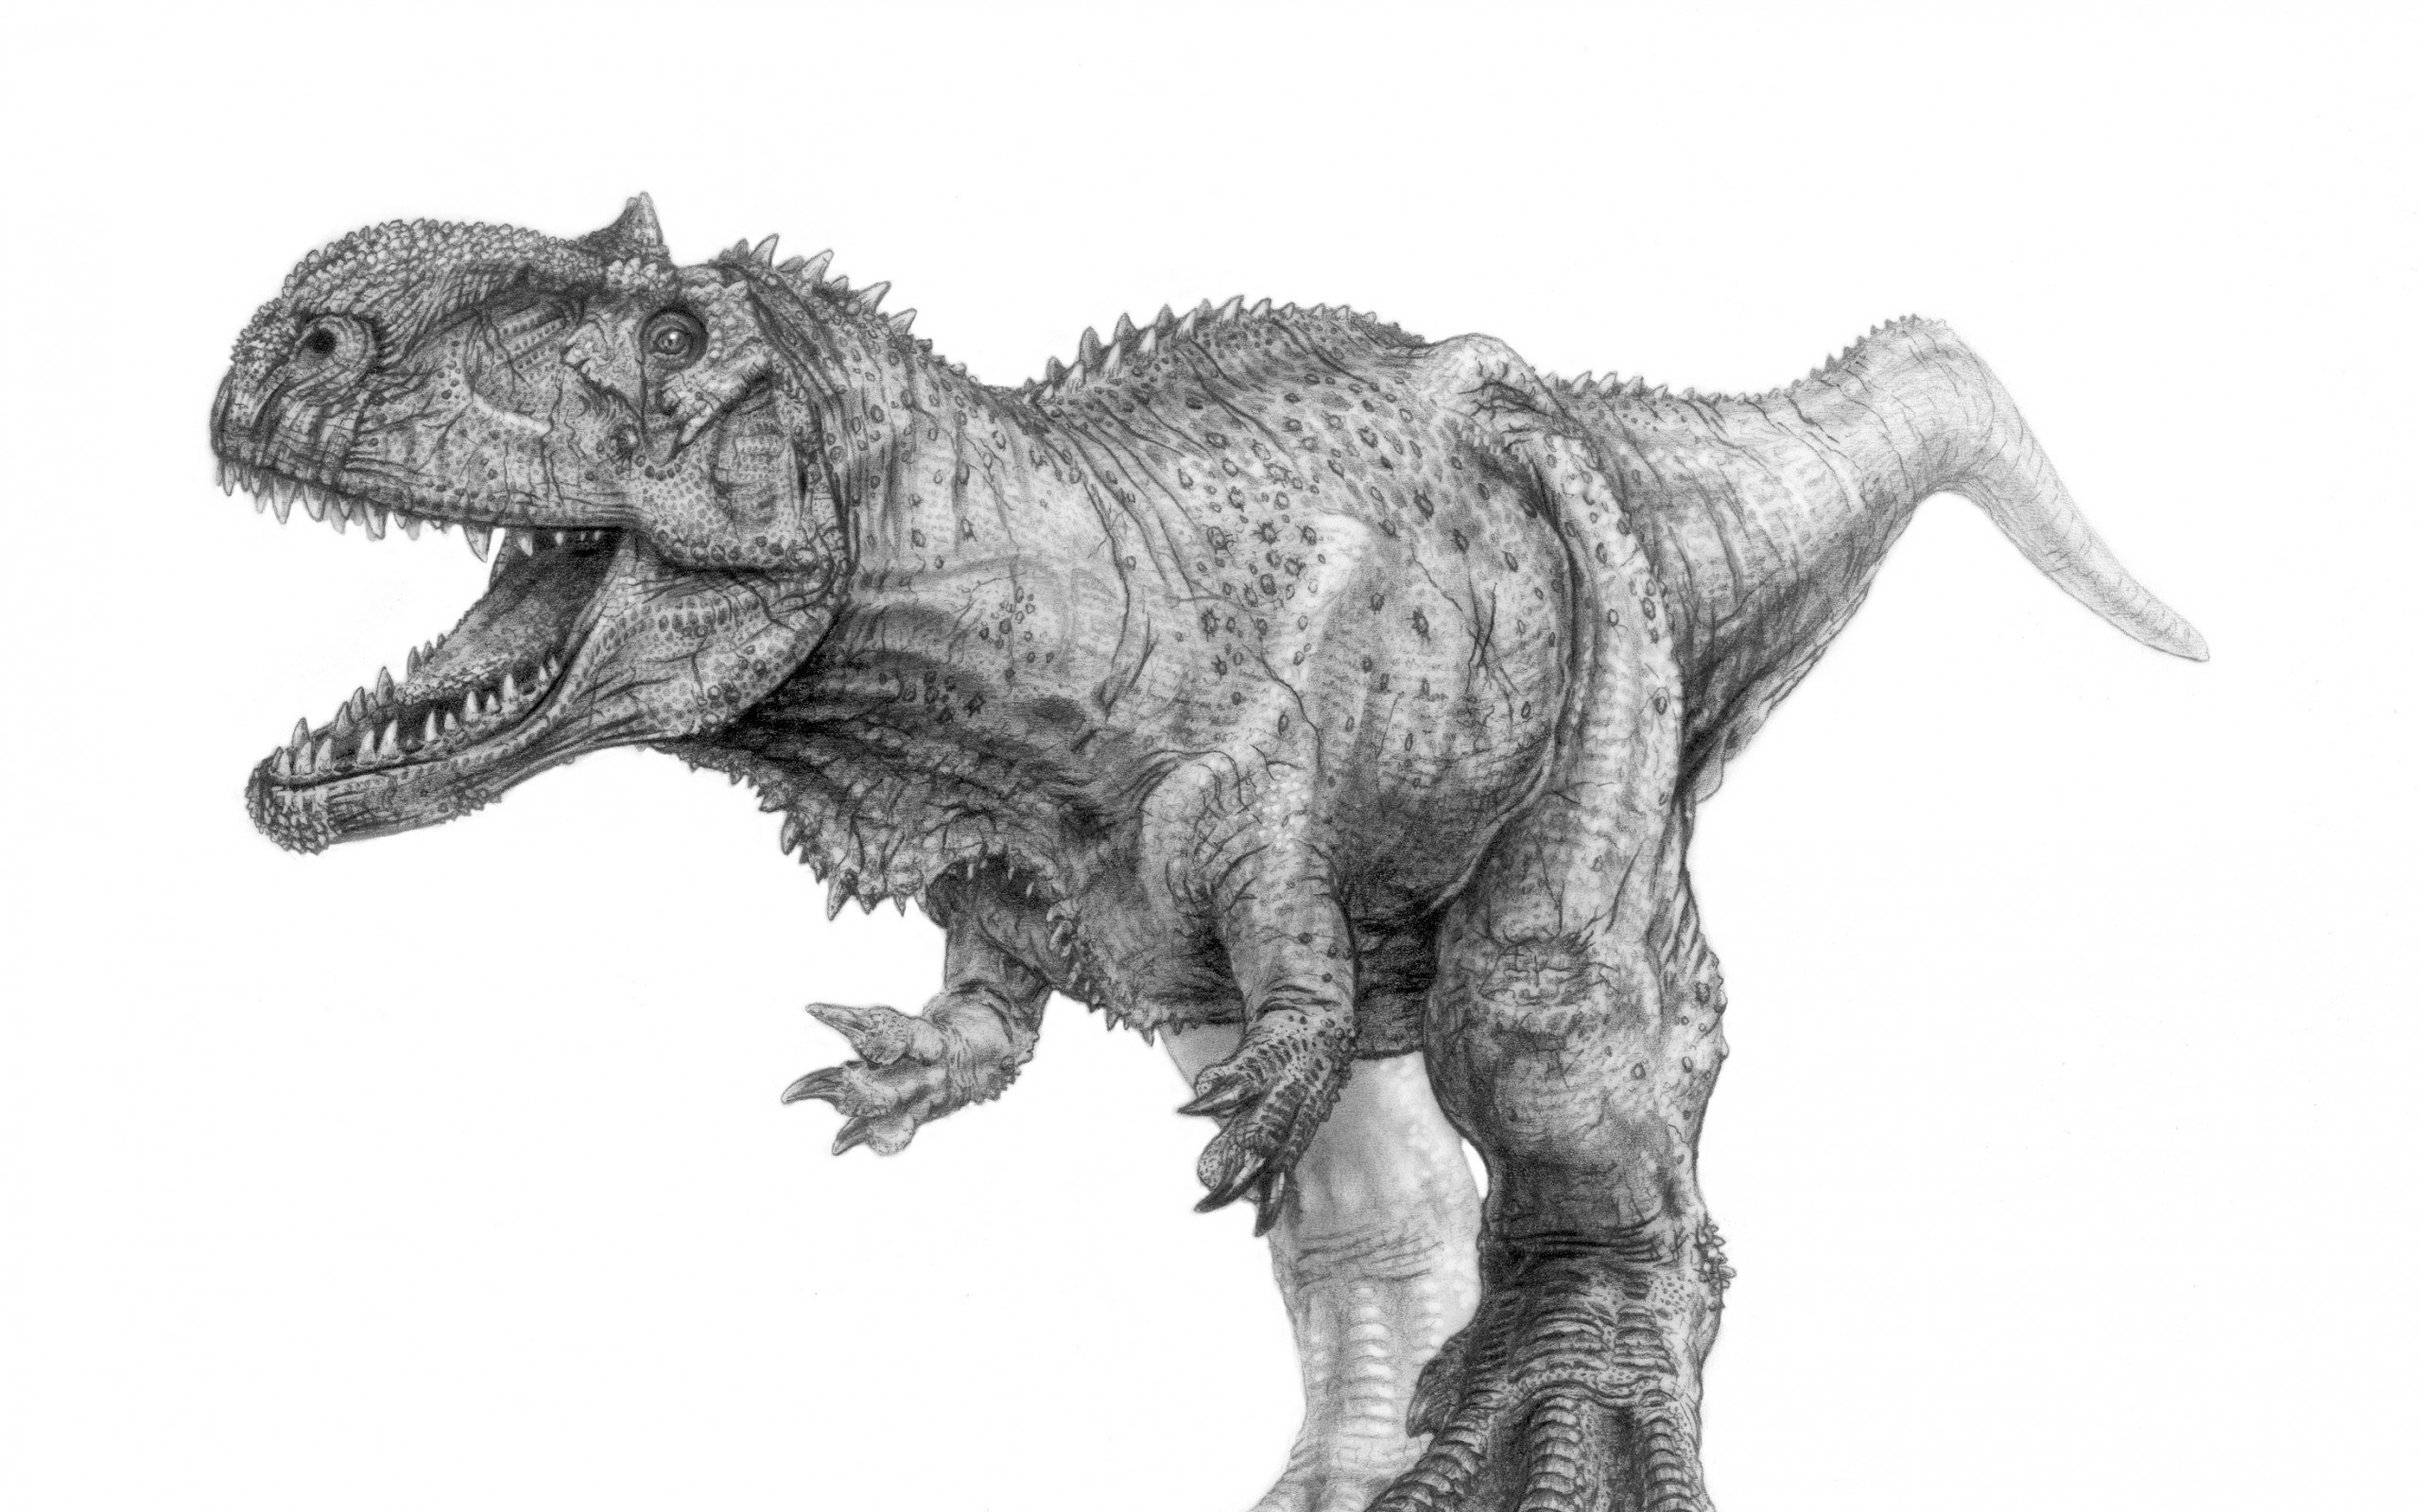 2560x1600 Download Wallpaper · Back. tyrannosaurus rex ...